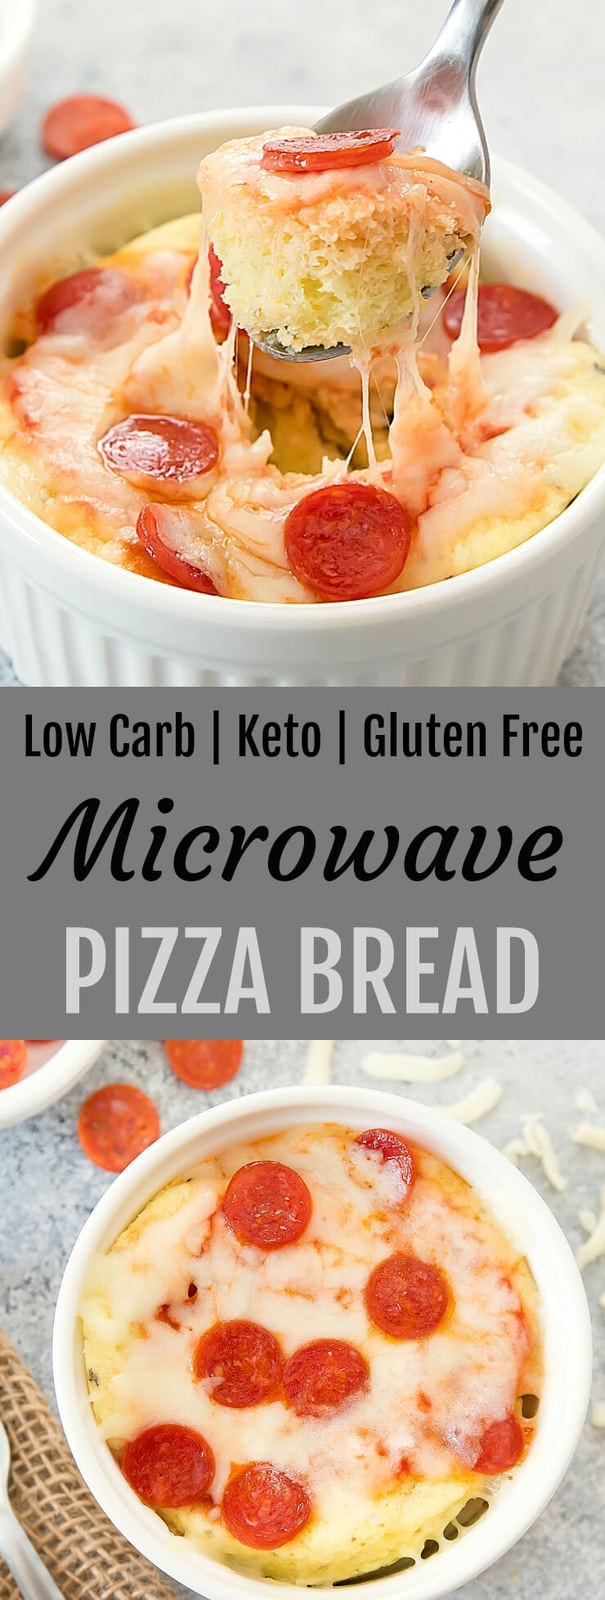 Low Carb Keto Microwave Pizza Bread. This single serving cheesy pizza bread is gluten free, wheat flour free, low carb and keto. It cooks in 2 minutes in the microwave!